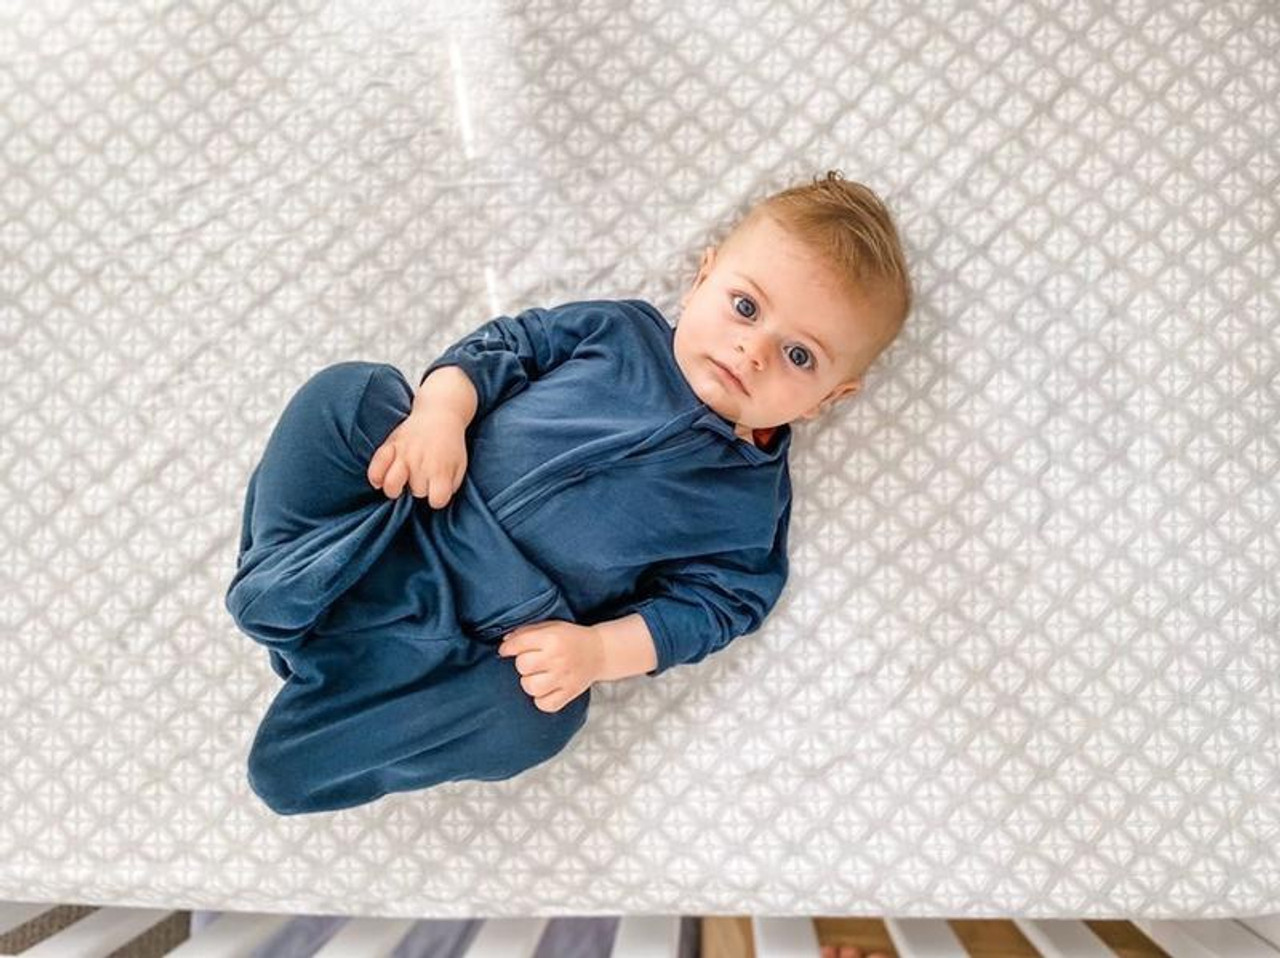 Babystudio Swaddlebag 0.5 TOG Large at Baby Barn Discounts The All In One Swaddle Bag by Babystudio is made from the softest bamboo from viscose for babies delicate skin. With a super light 0.5 TOG, great for summer.